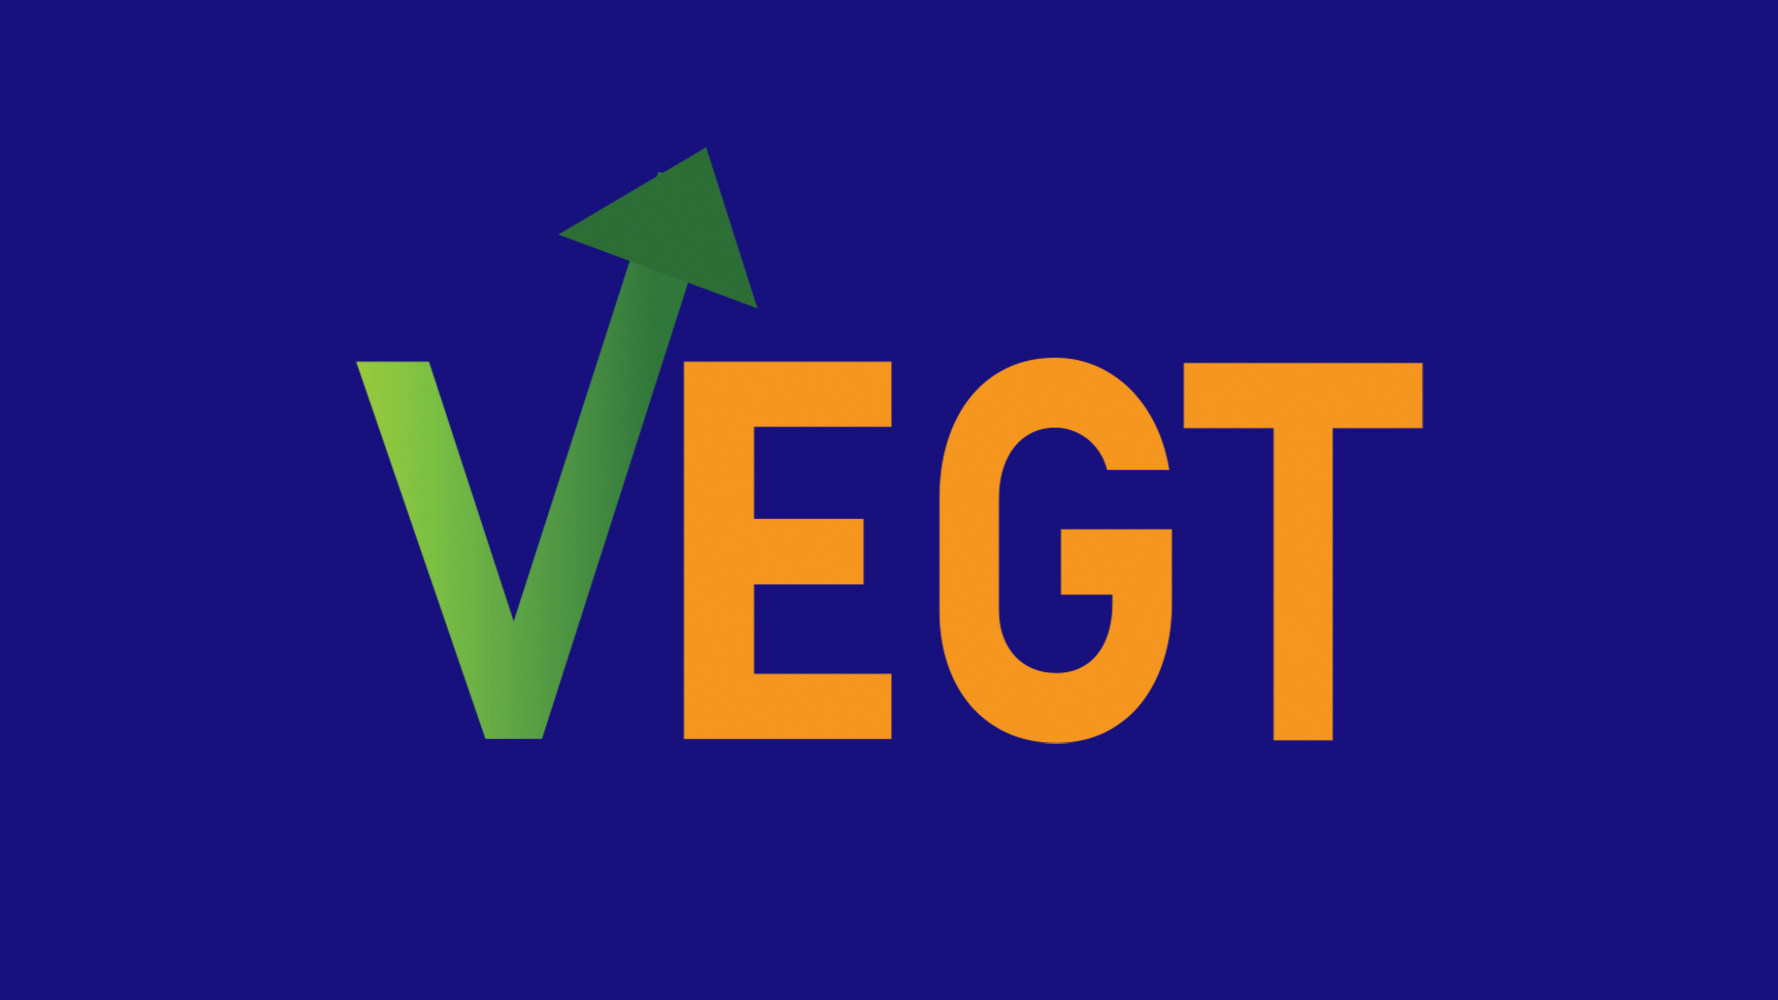 VegTech™: The Global Vegan Impact and Innovation Index™ and Live Ticker Launch for the First Vegan Dow Jones-type Index